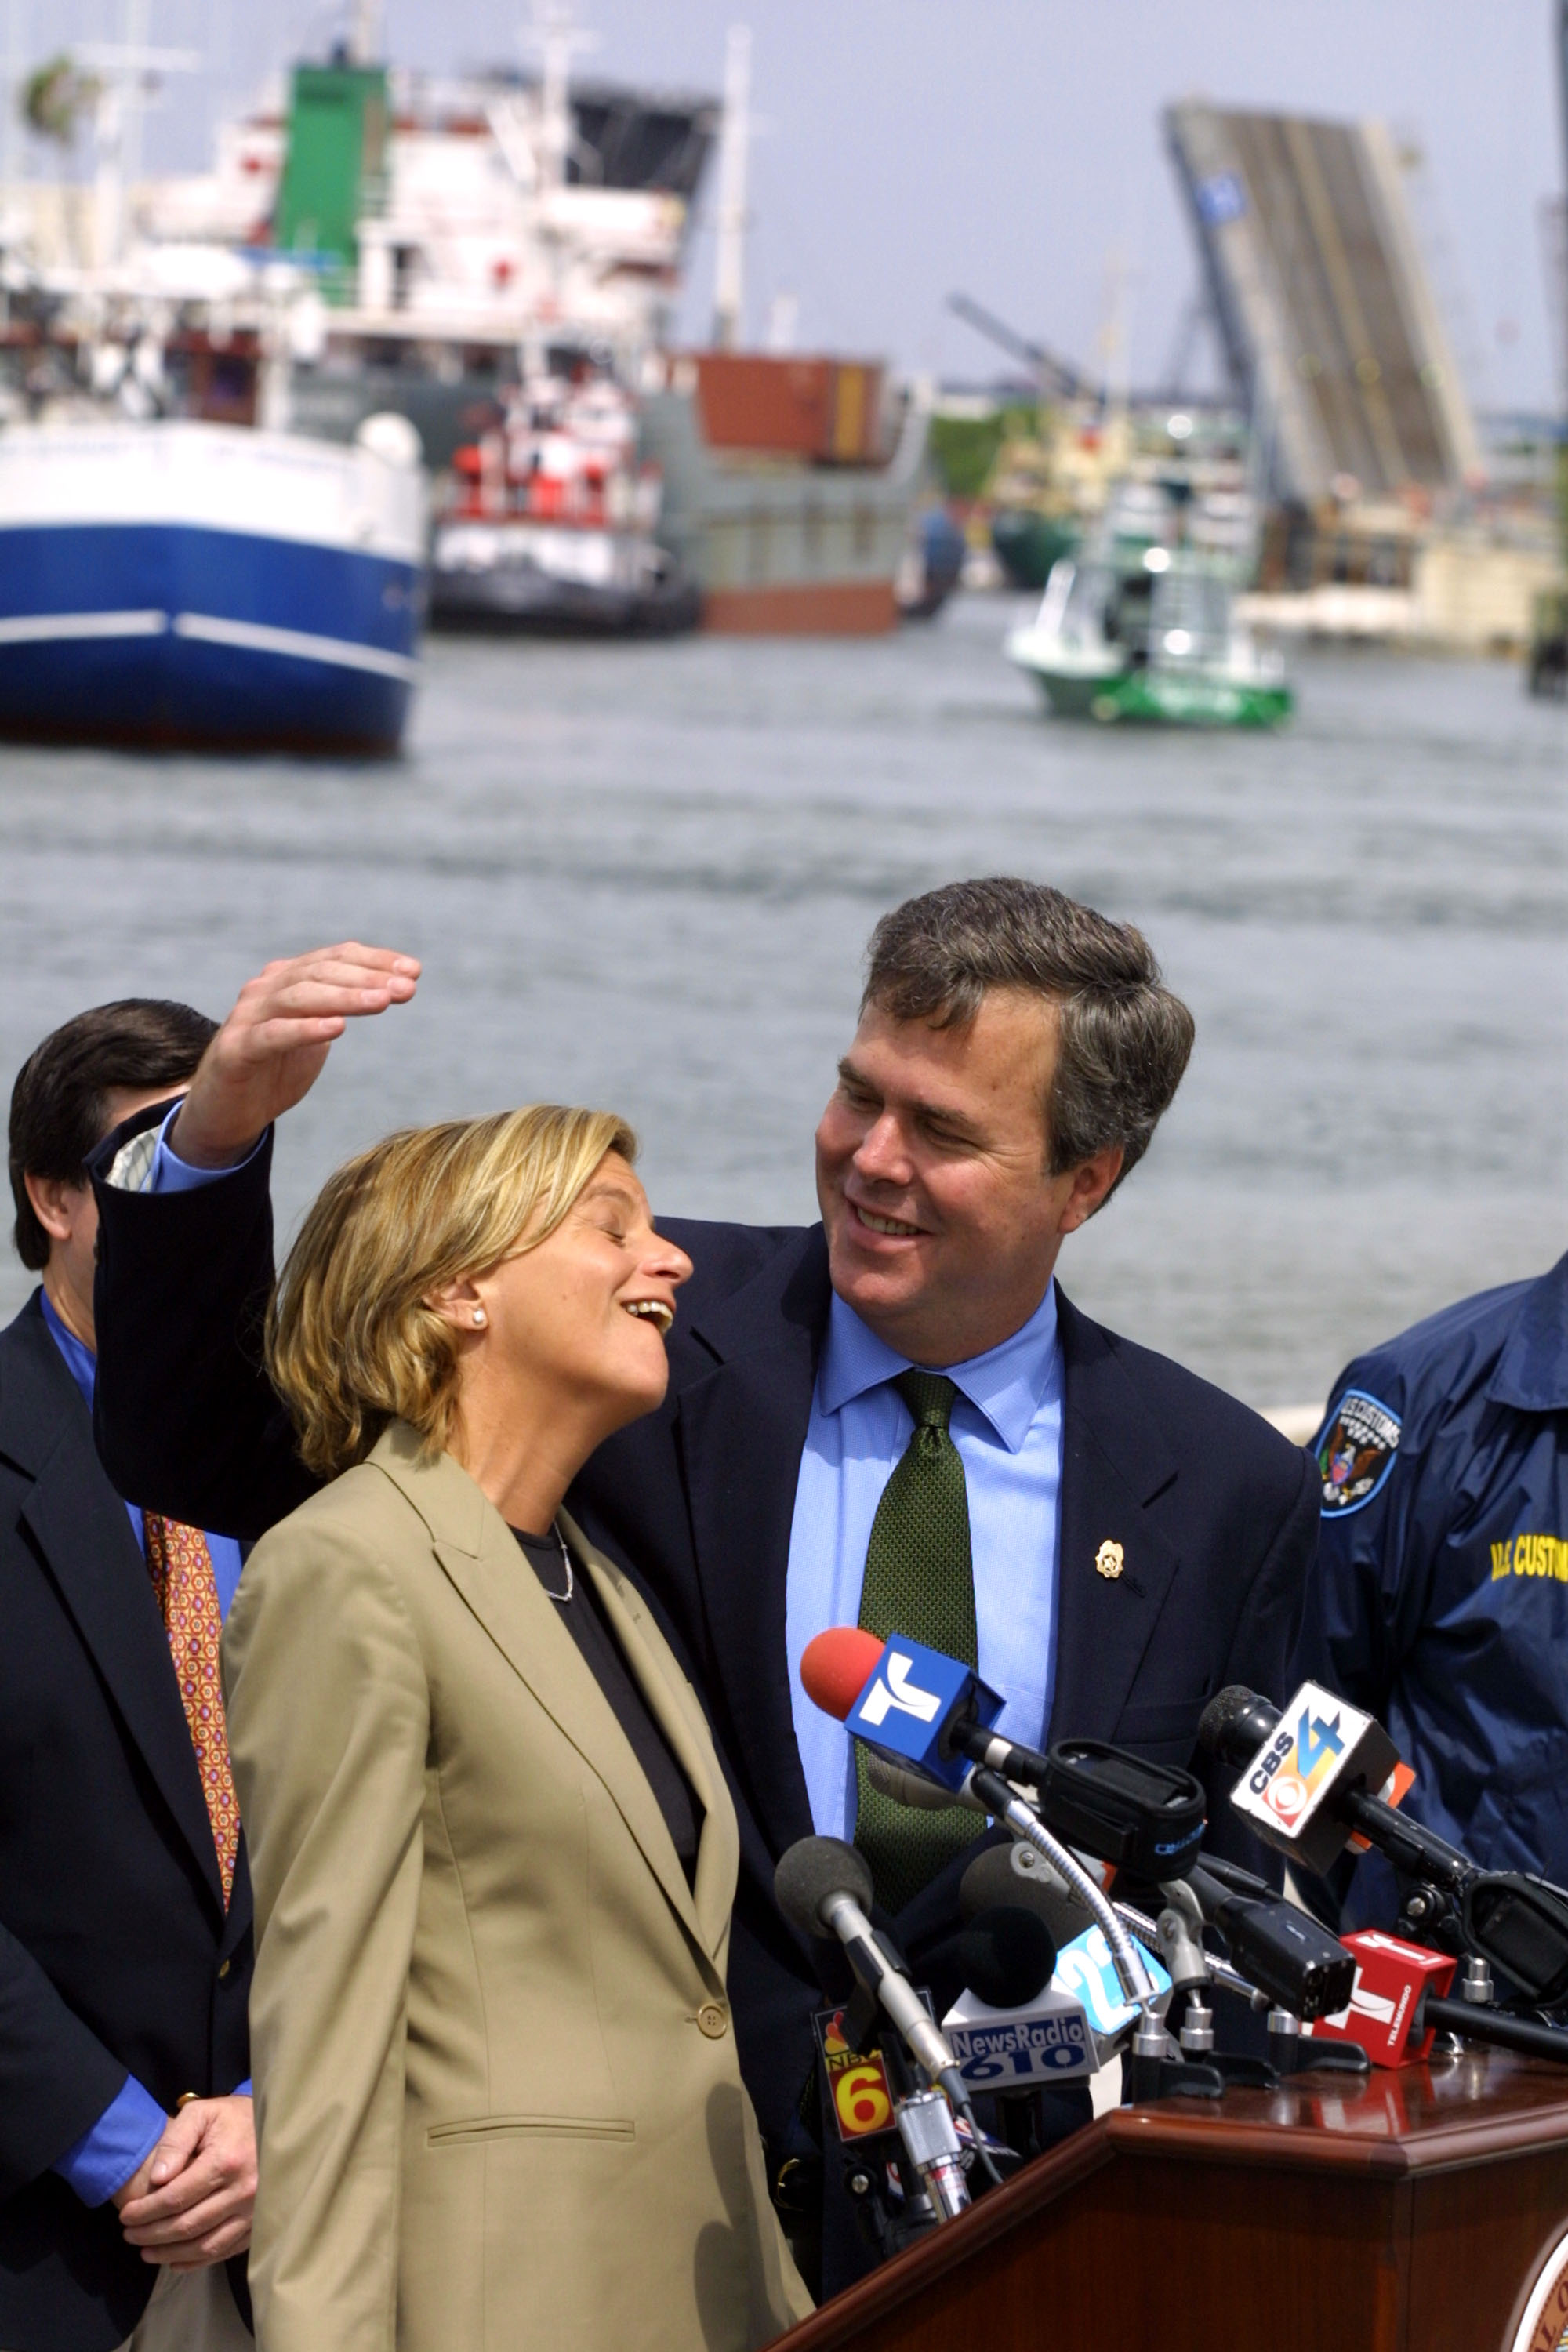 Republican Florida Congresswoman Ileana Ros-Lehtinen and Florida Governor Jeb Bush share a light moment as Ros-Lehtinen has to use a small ladder to get high enough to speak into the microphones during a press conference May 8, 2001 along the Miami River. The press conference was held to applaud the efforts of federal, state and local law enforcement for the progress being made in Operation Riverwalk in Miami, Florida. The operation is a minimum two-year law enforcement action which seeks to eliminate the drug trade on the Miami River. (Photo by Joe Raedle/Newsmakers)